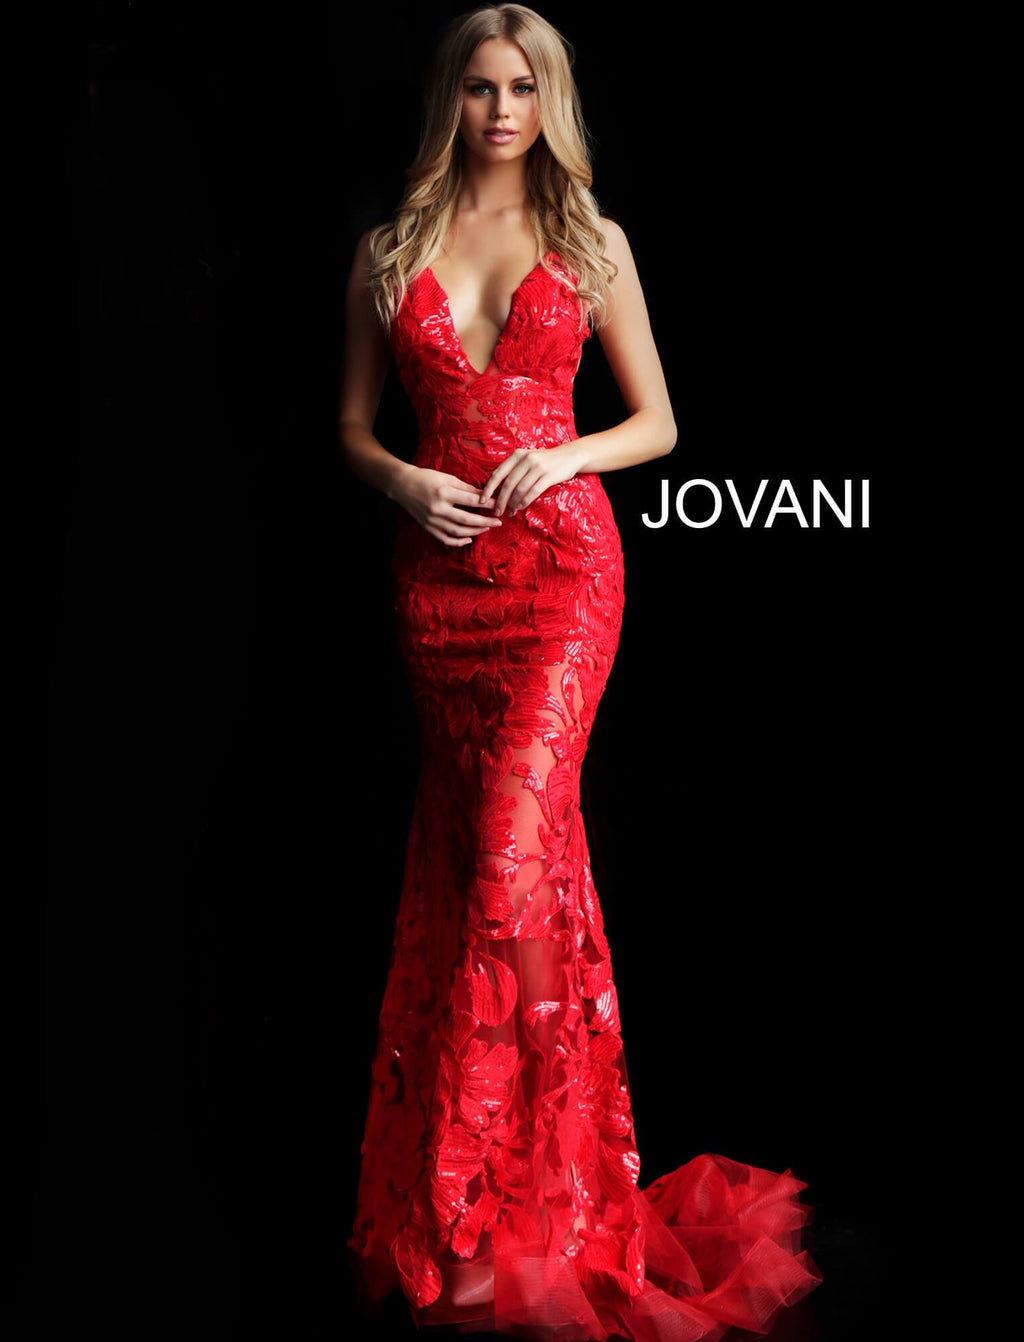 Jovani Red Lace Embellished Gown